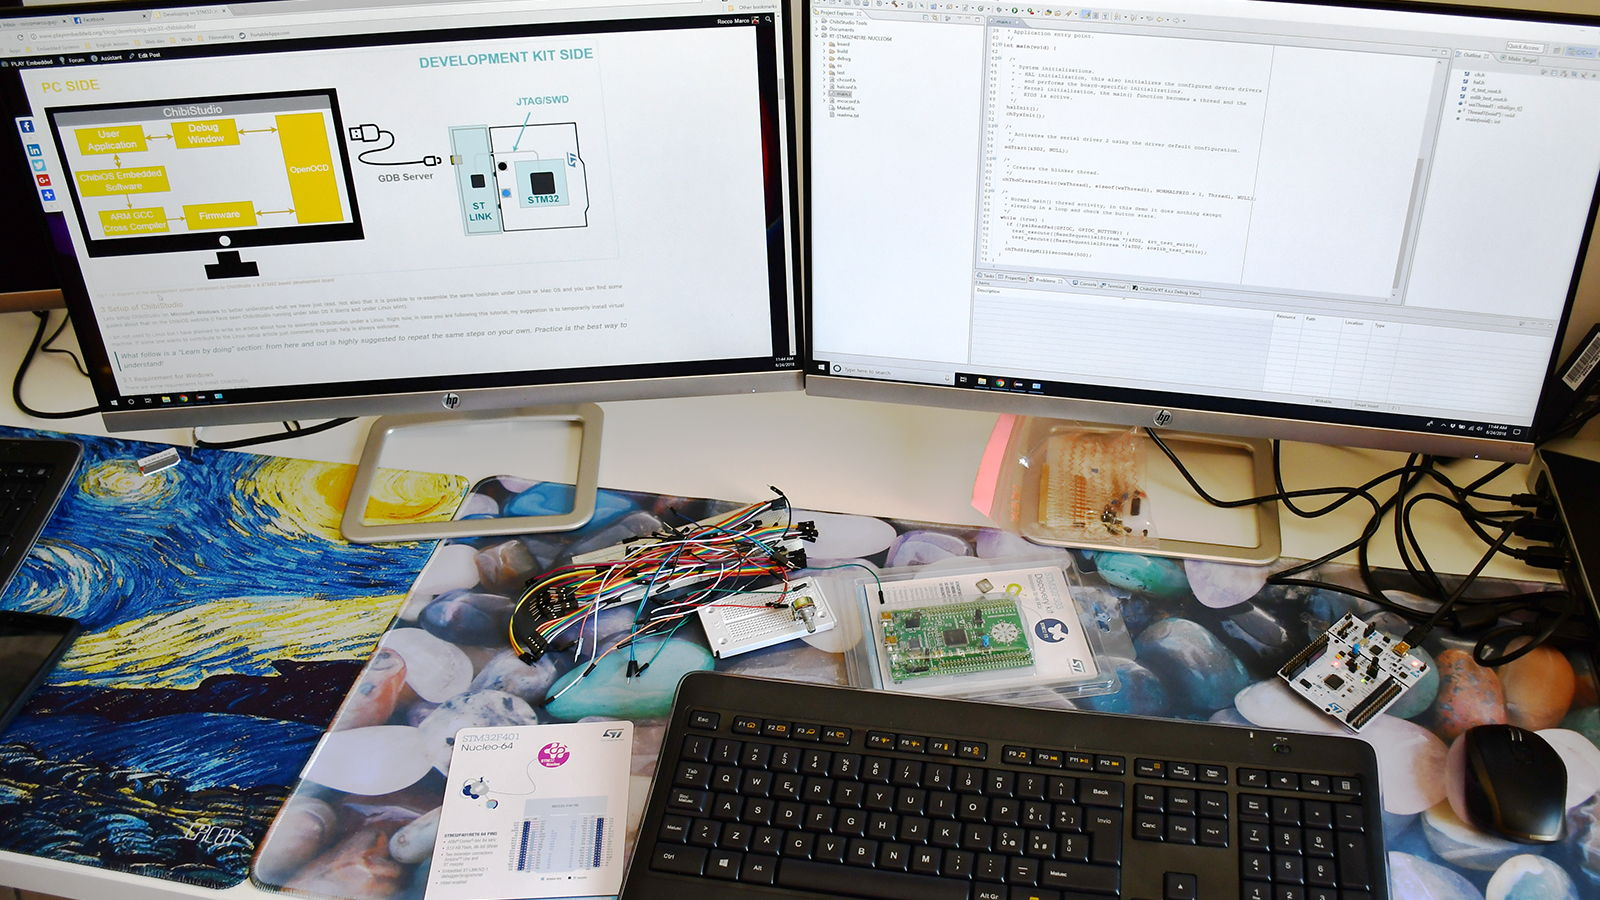 Developing with STM32 introducing ChibiStudio